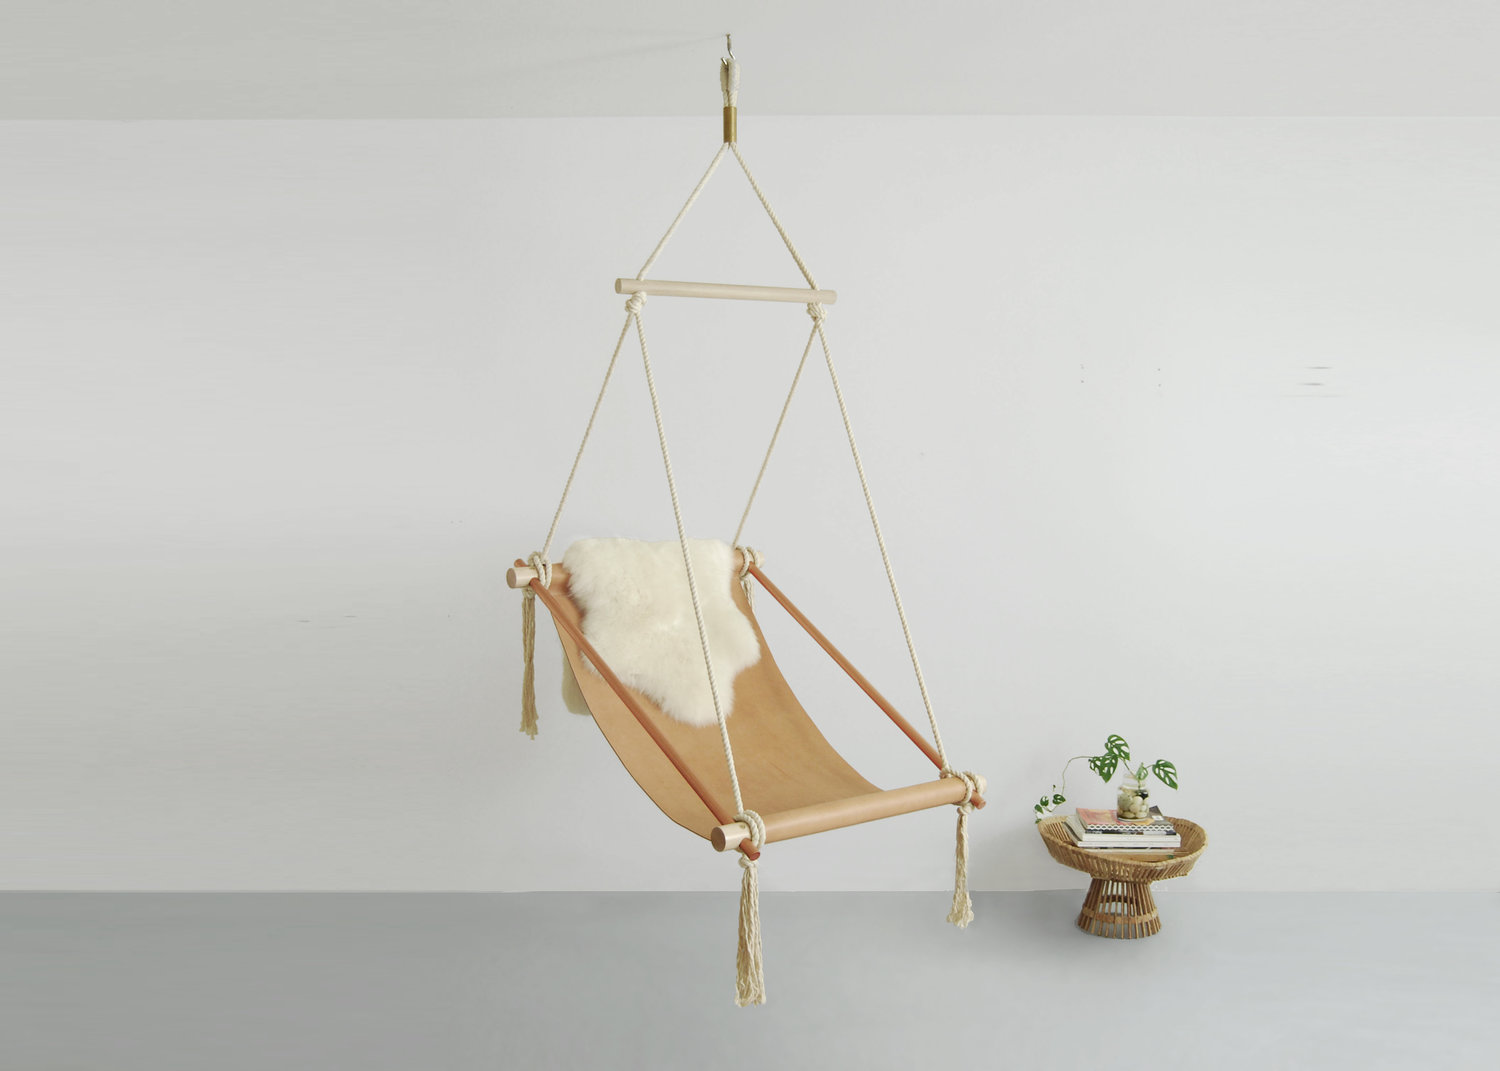 Ovis, suspended wooden chair, metal, leather and cotton rope